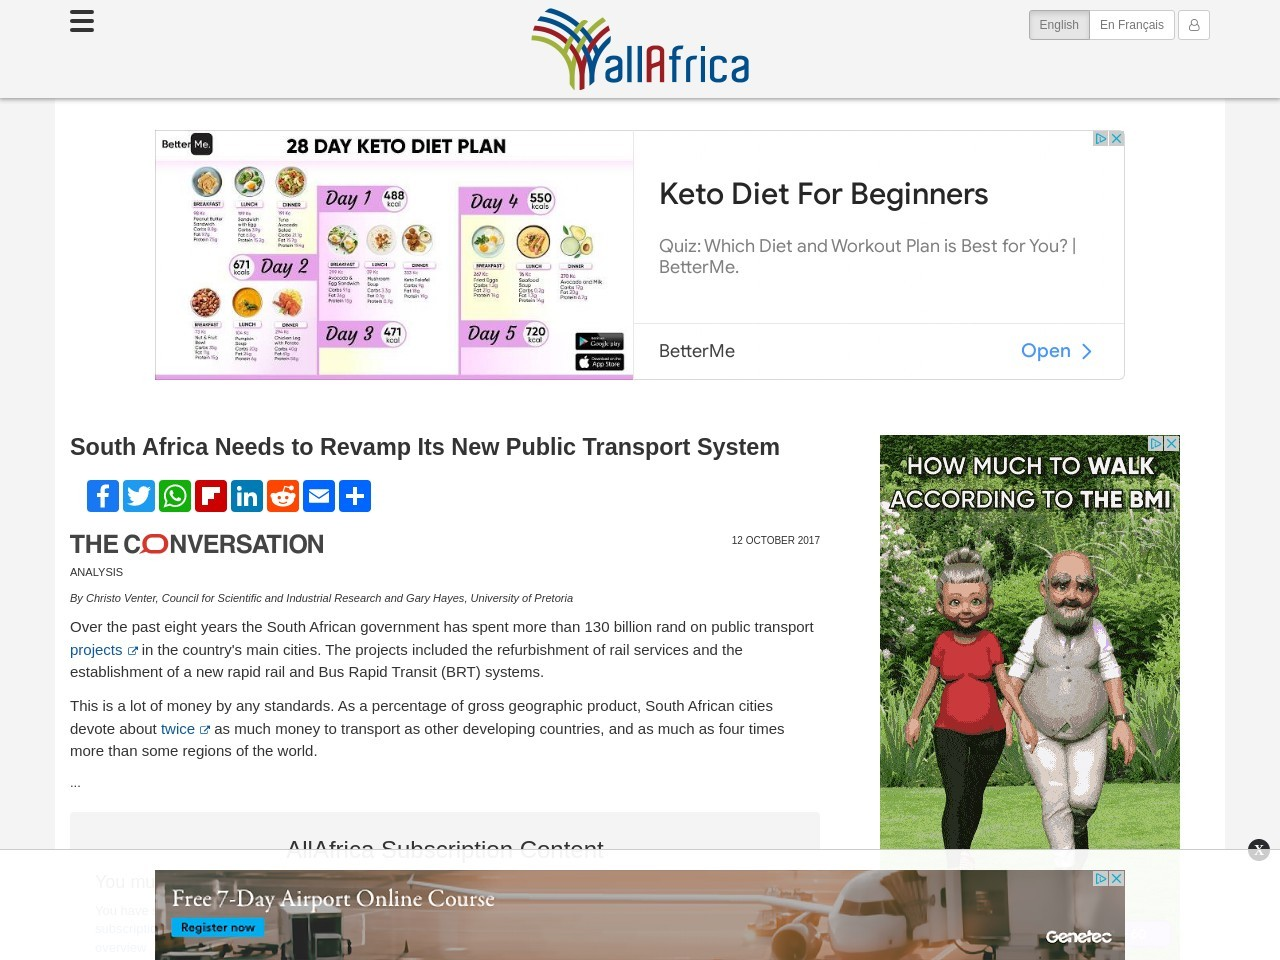 South Africa: South Africa Needs to Revamp Its New Public Transport System